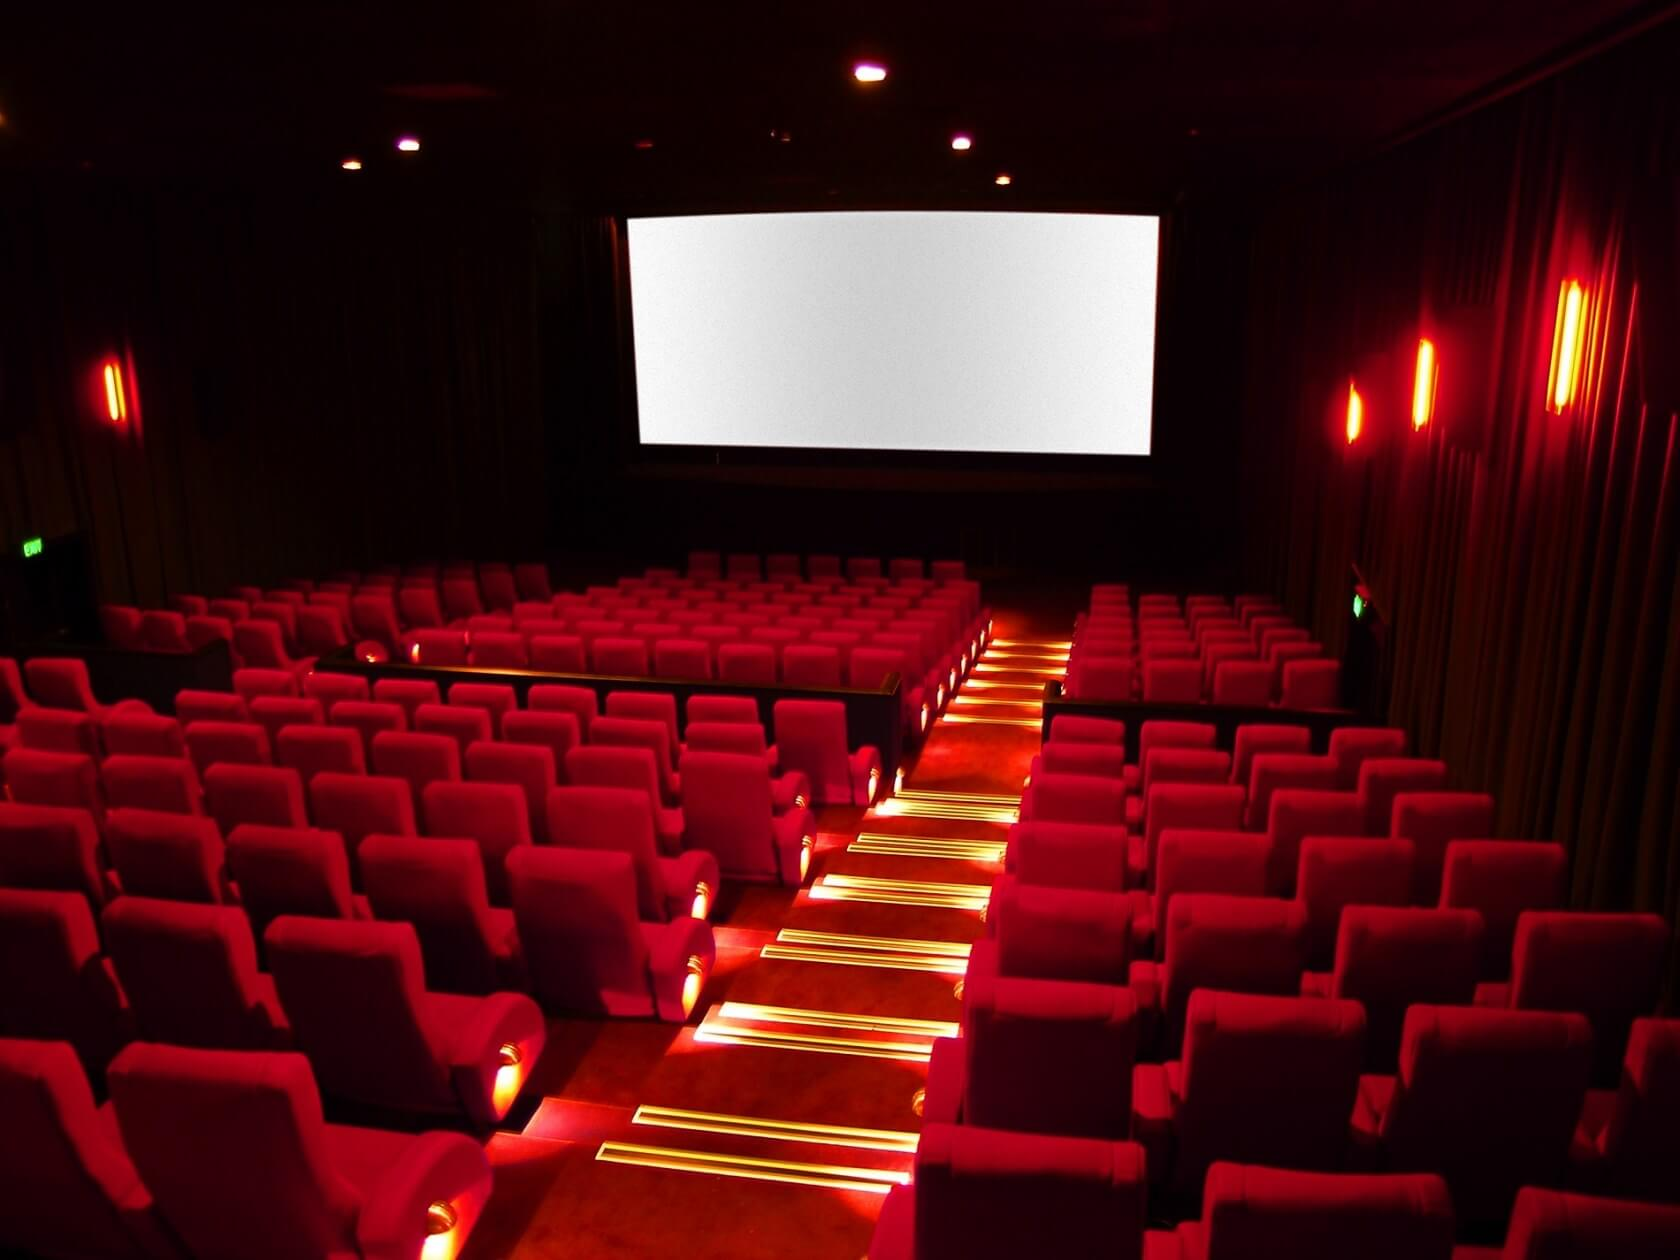 Netflix Reportedly Wants To Buy Its Own Theaters